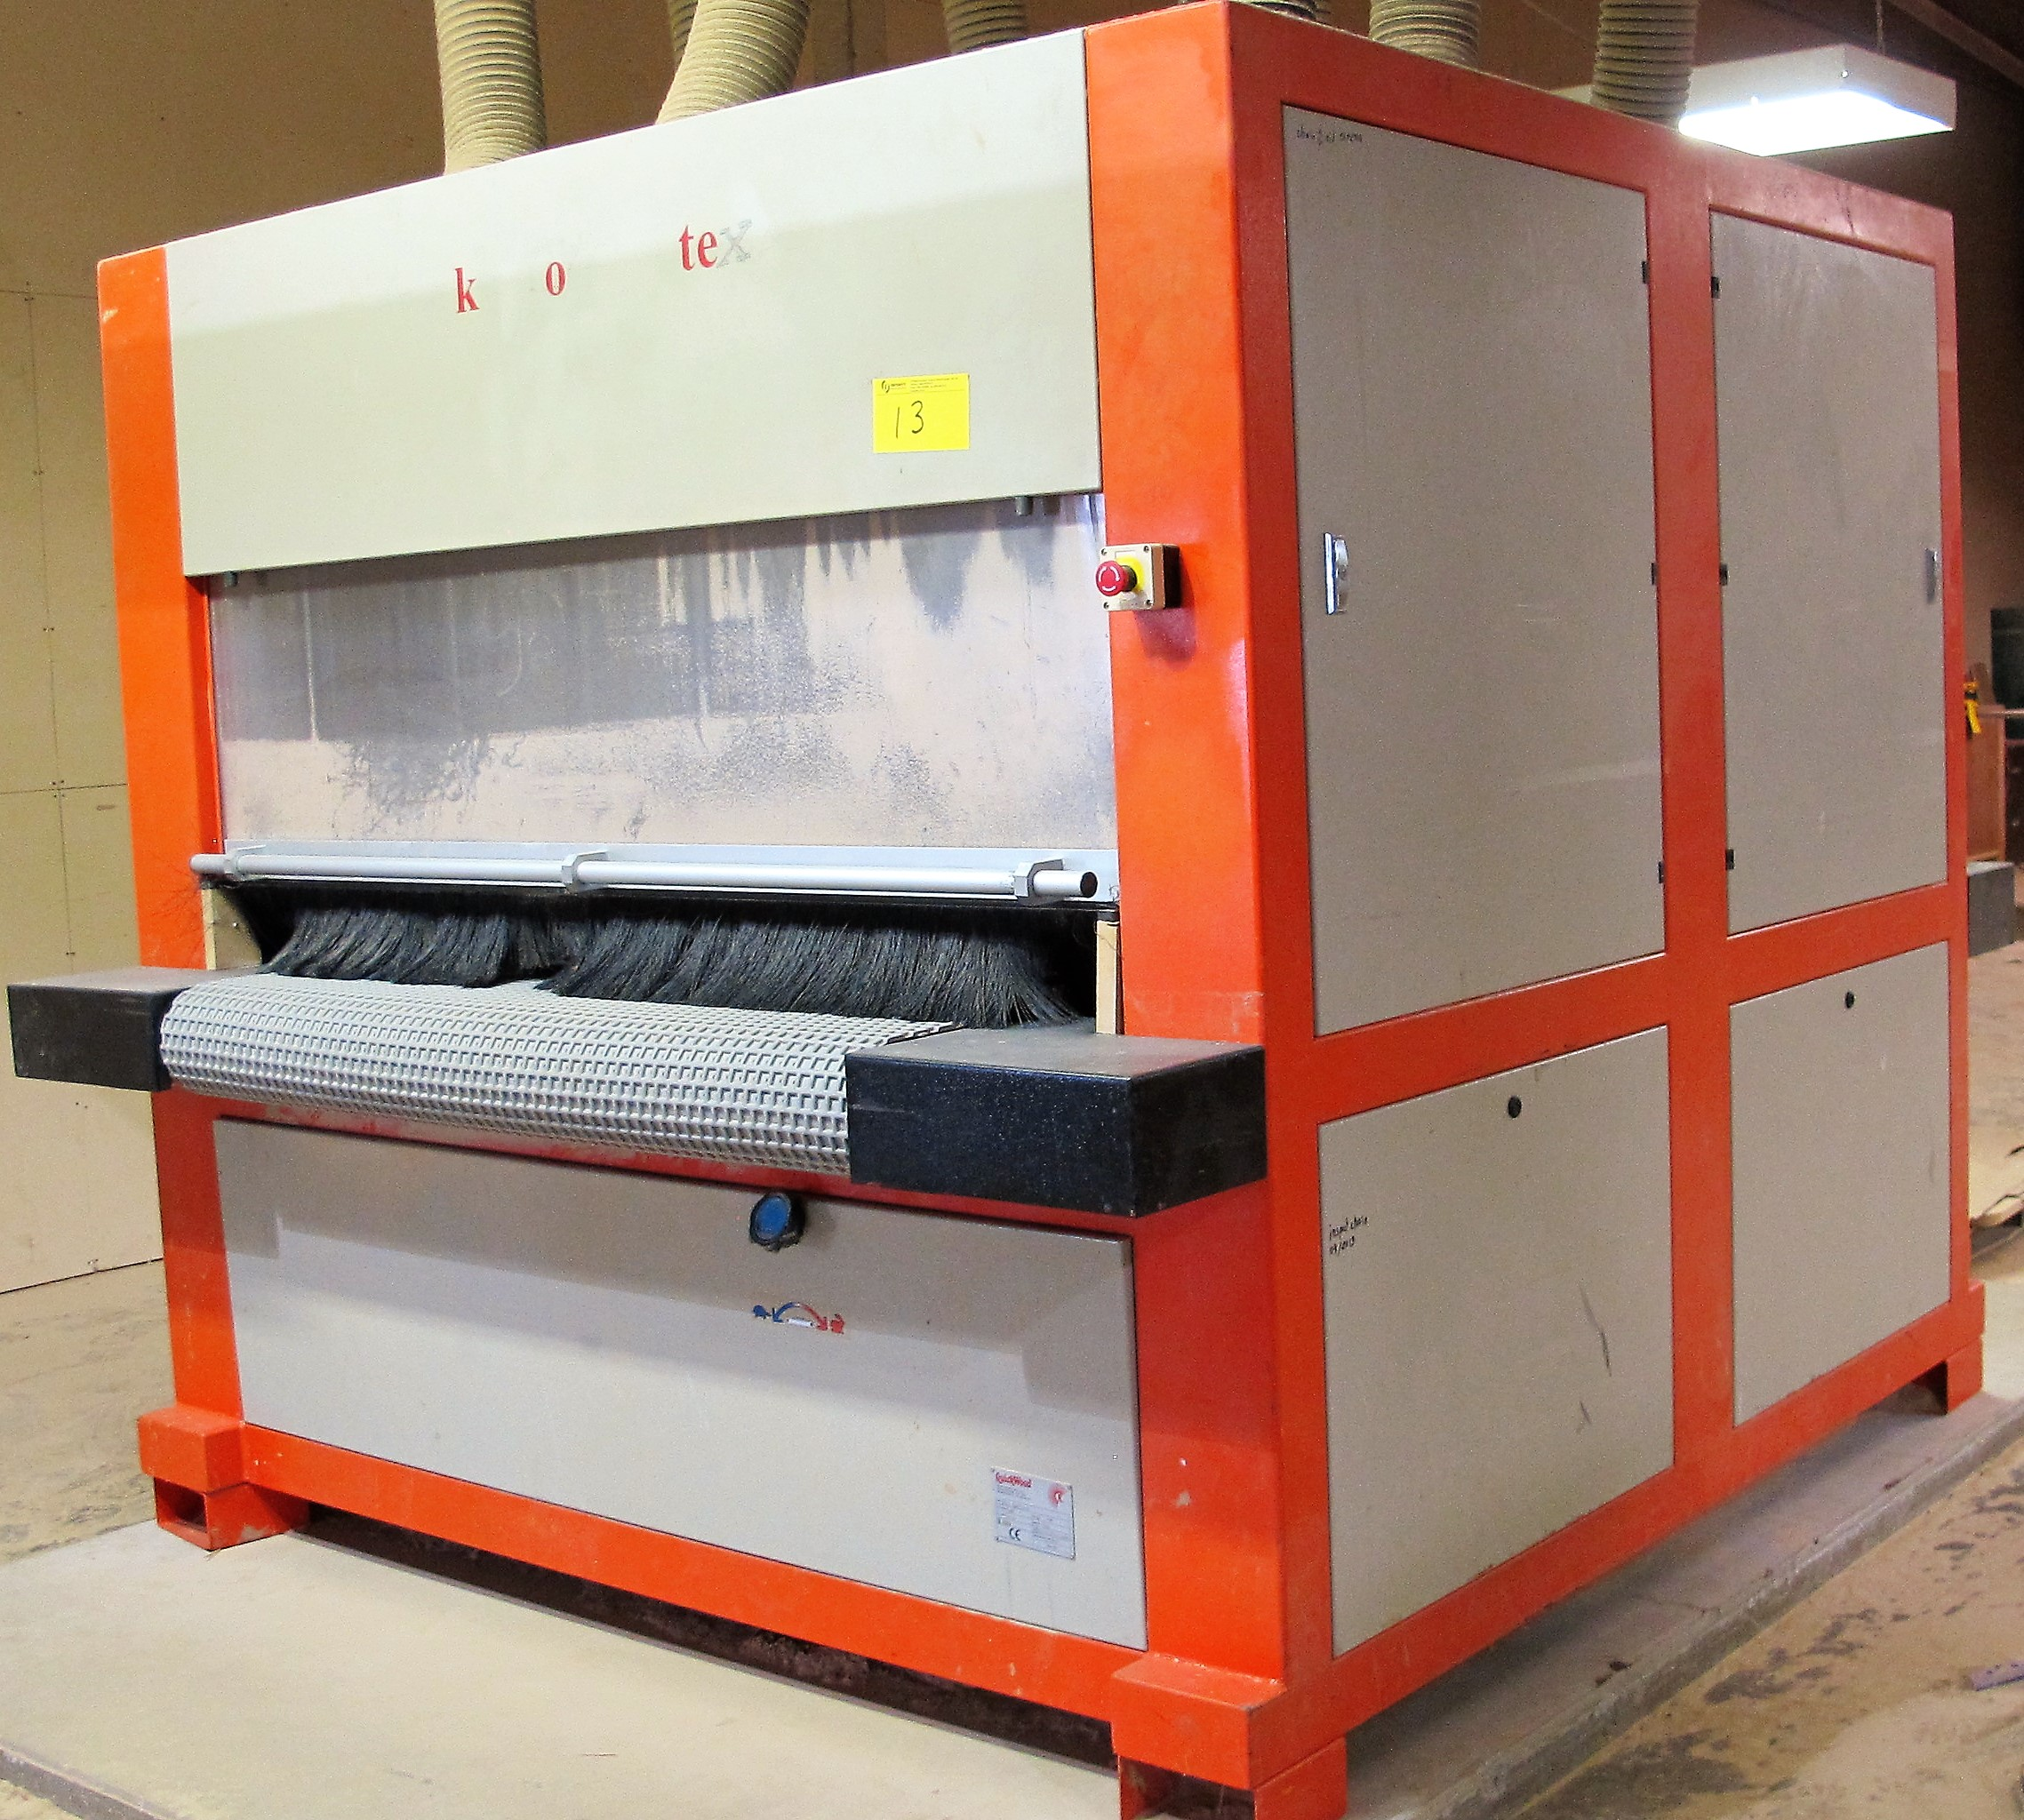 Lot 13 - 2003 QUICKWOOD SYSTEM PRO 1400 FINISHING SYSTEM, S/N 7302 W/ CONTROL PANEL & COMPUTER